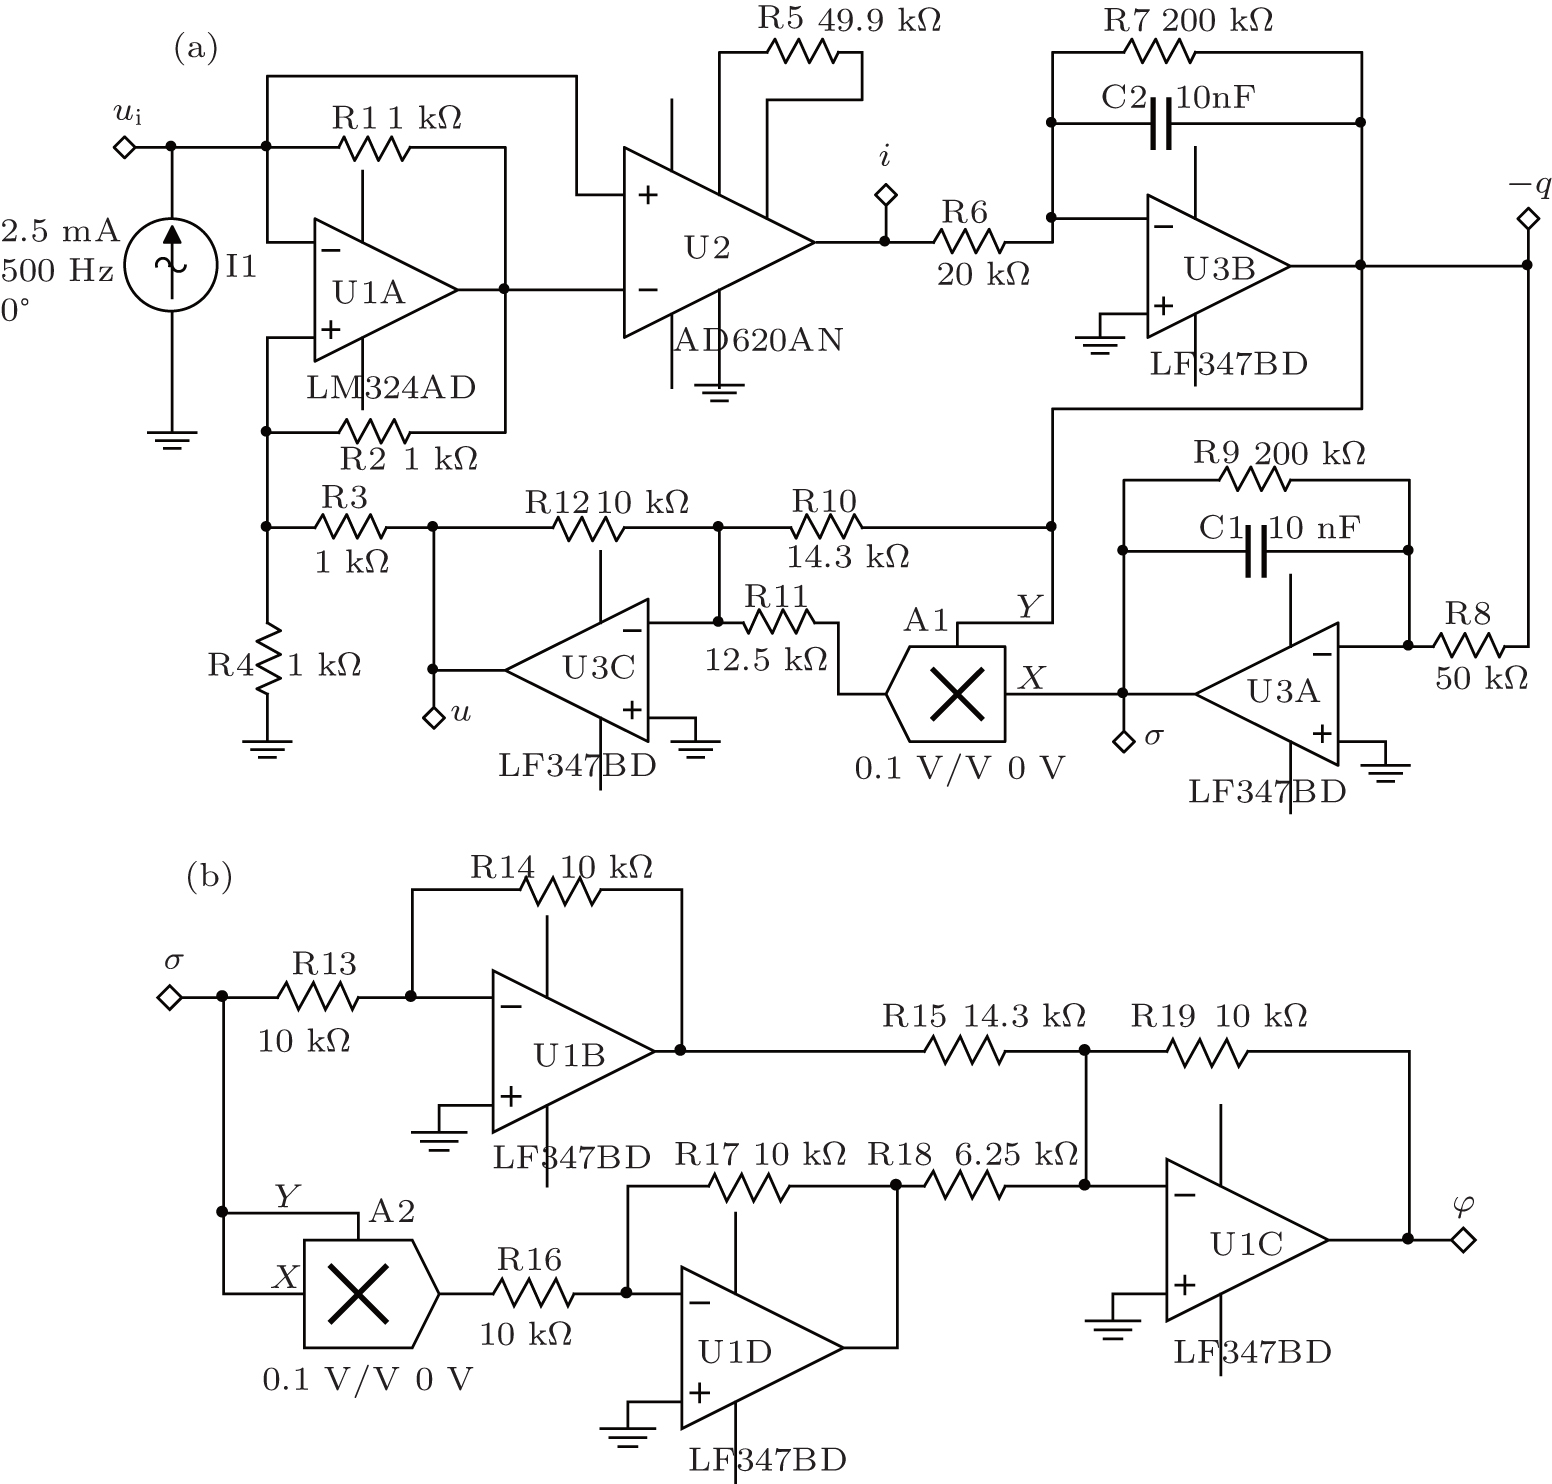 Memcapacitor Model And Its Application In A Chaotic Oscillator Circuit Diagram U View Download New Window